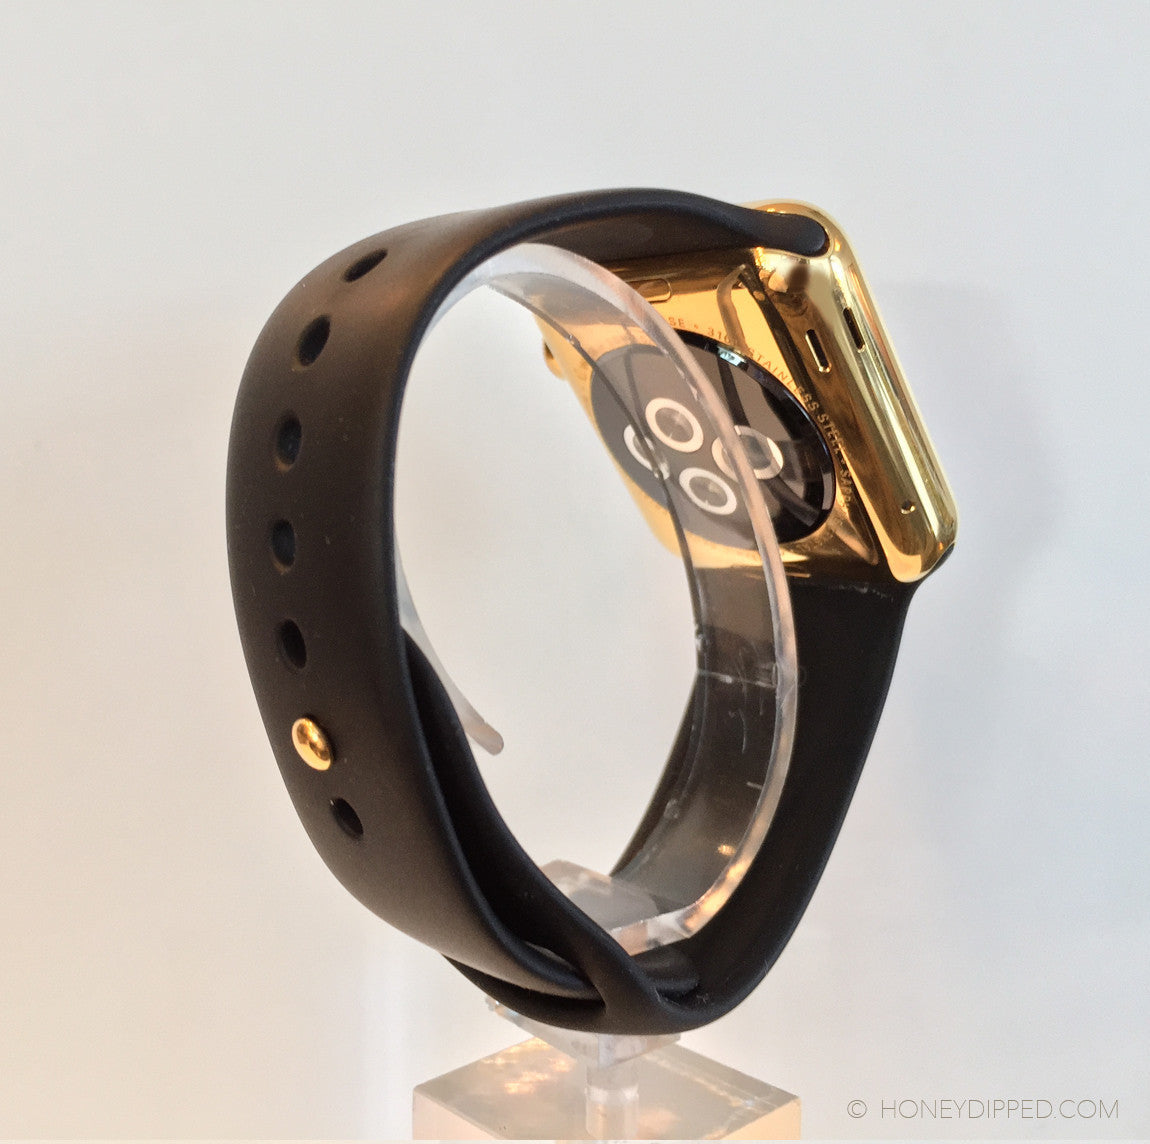 GOLD PLATING SERVICE FOR APPLE WATCH BANDS